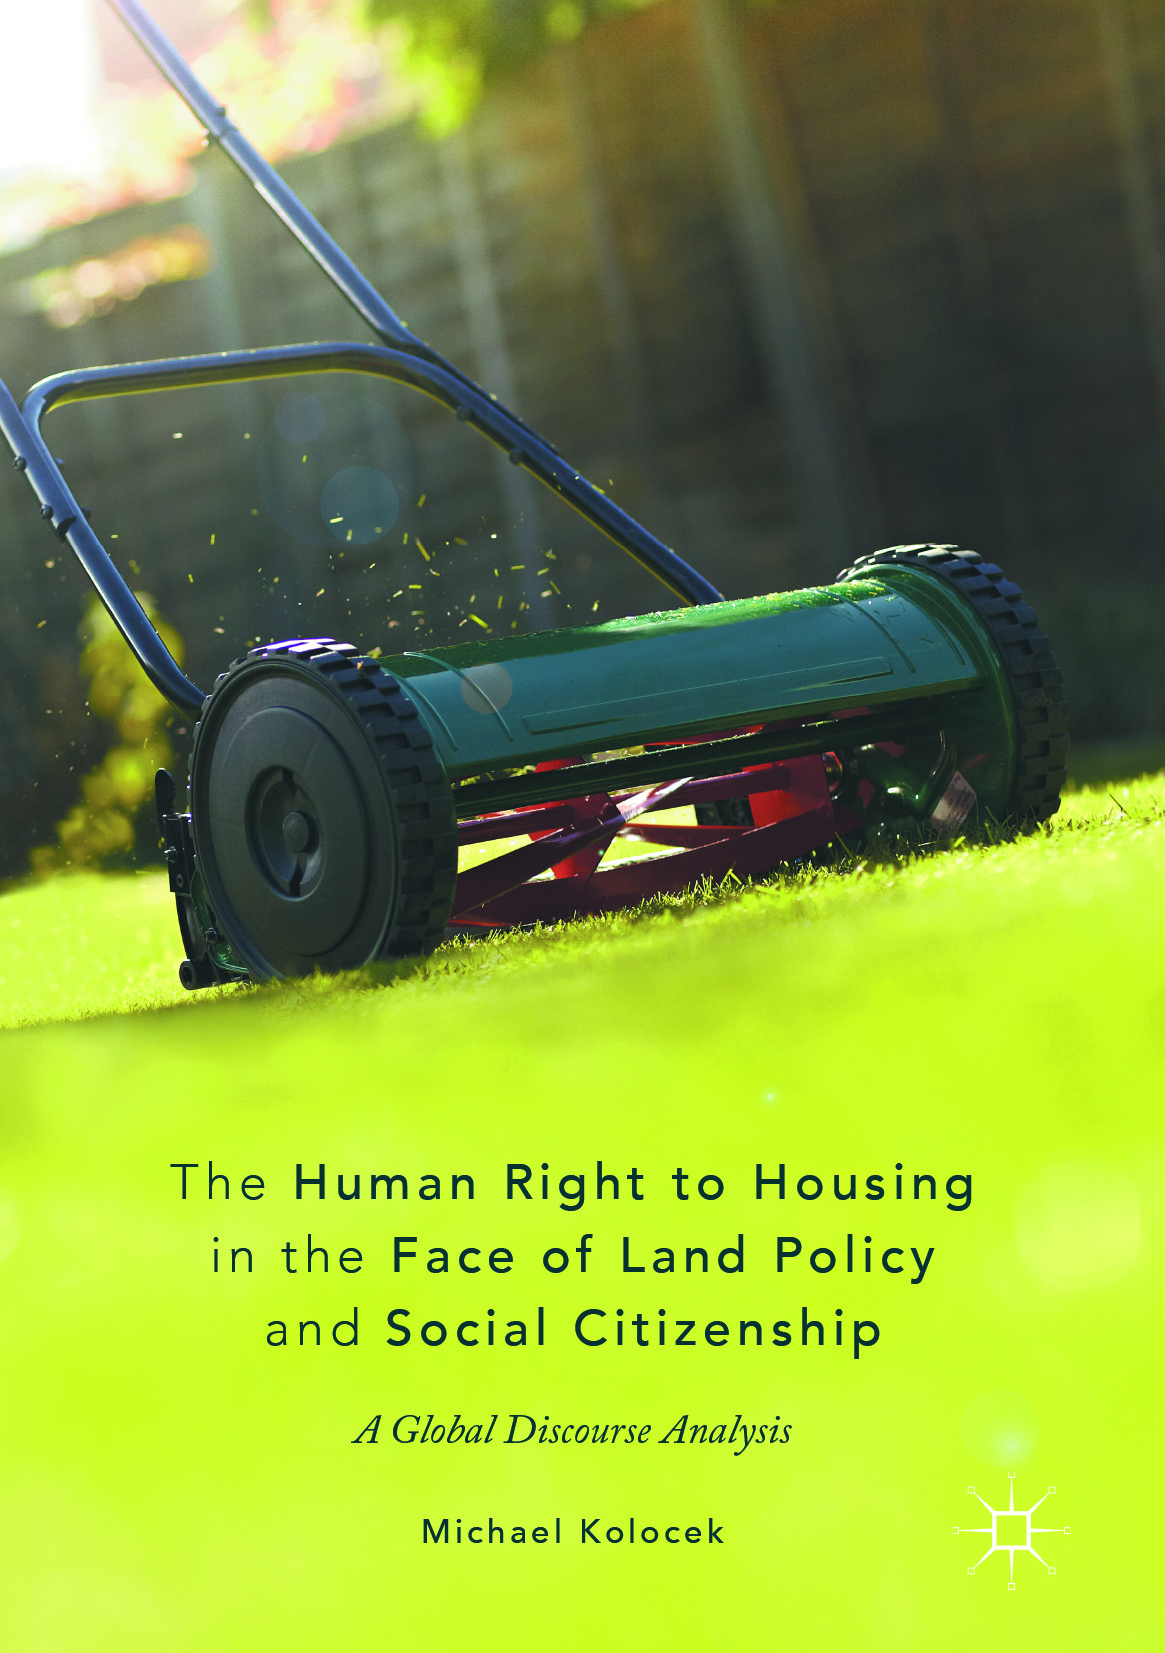 Kolocek, Michael - The Human Right to Housing in the Face of Land Policy and Social Citizenship, ebook